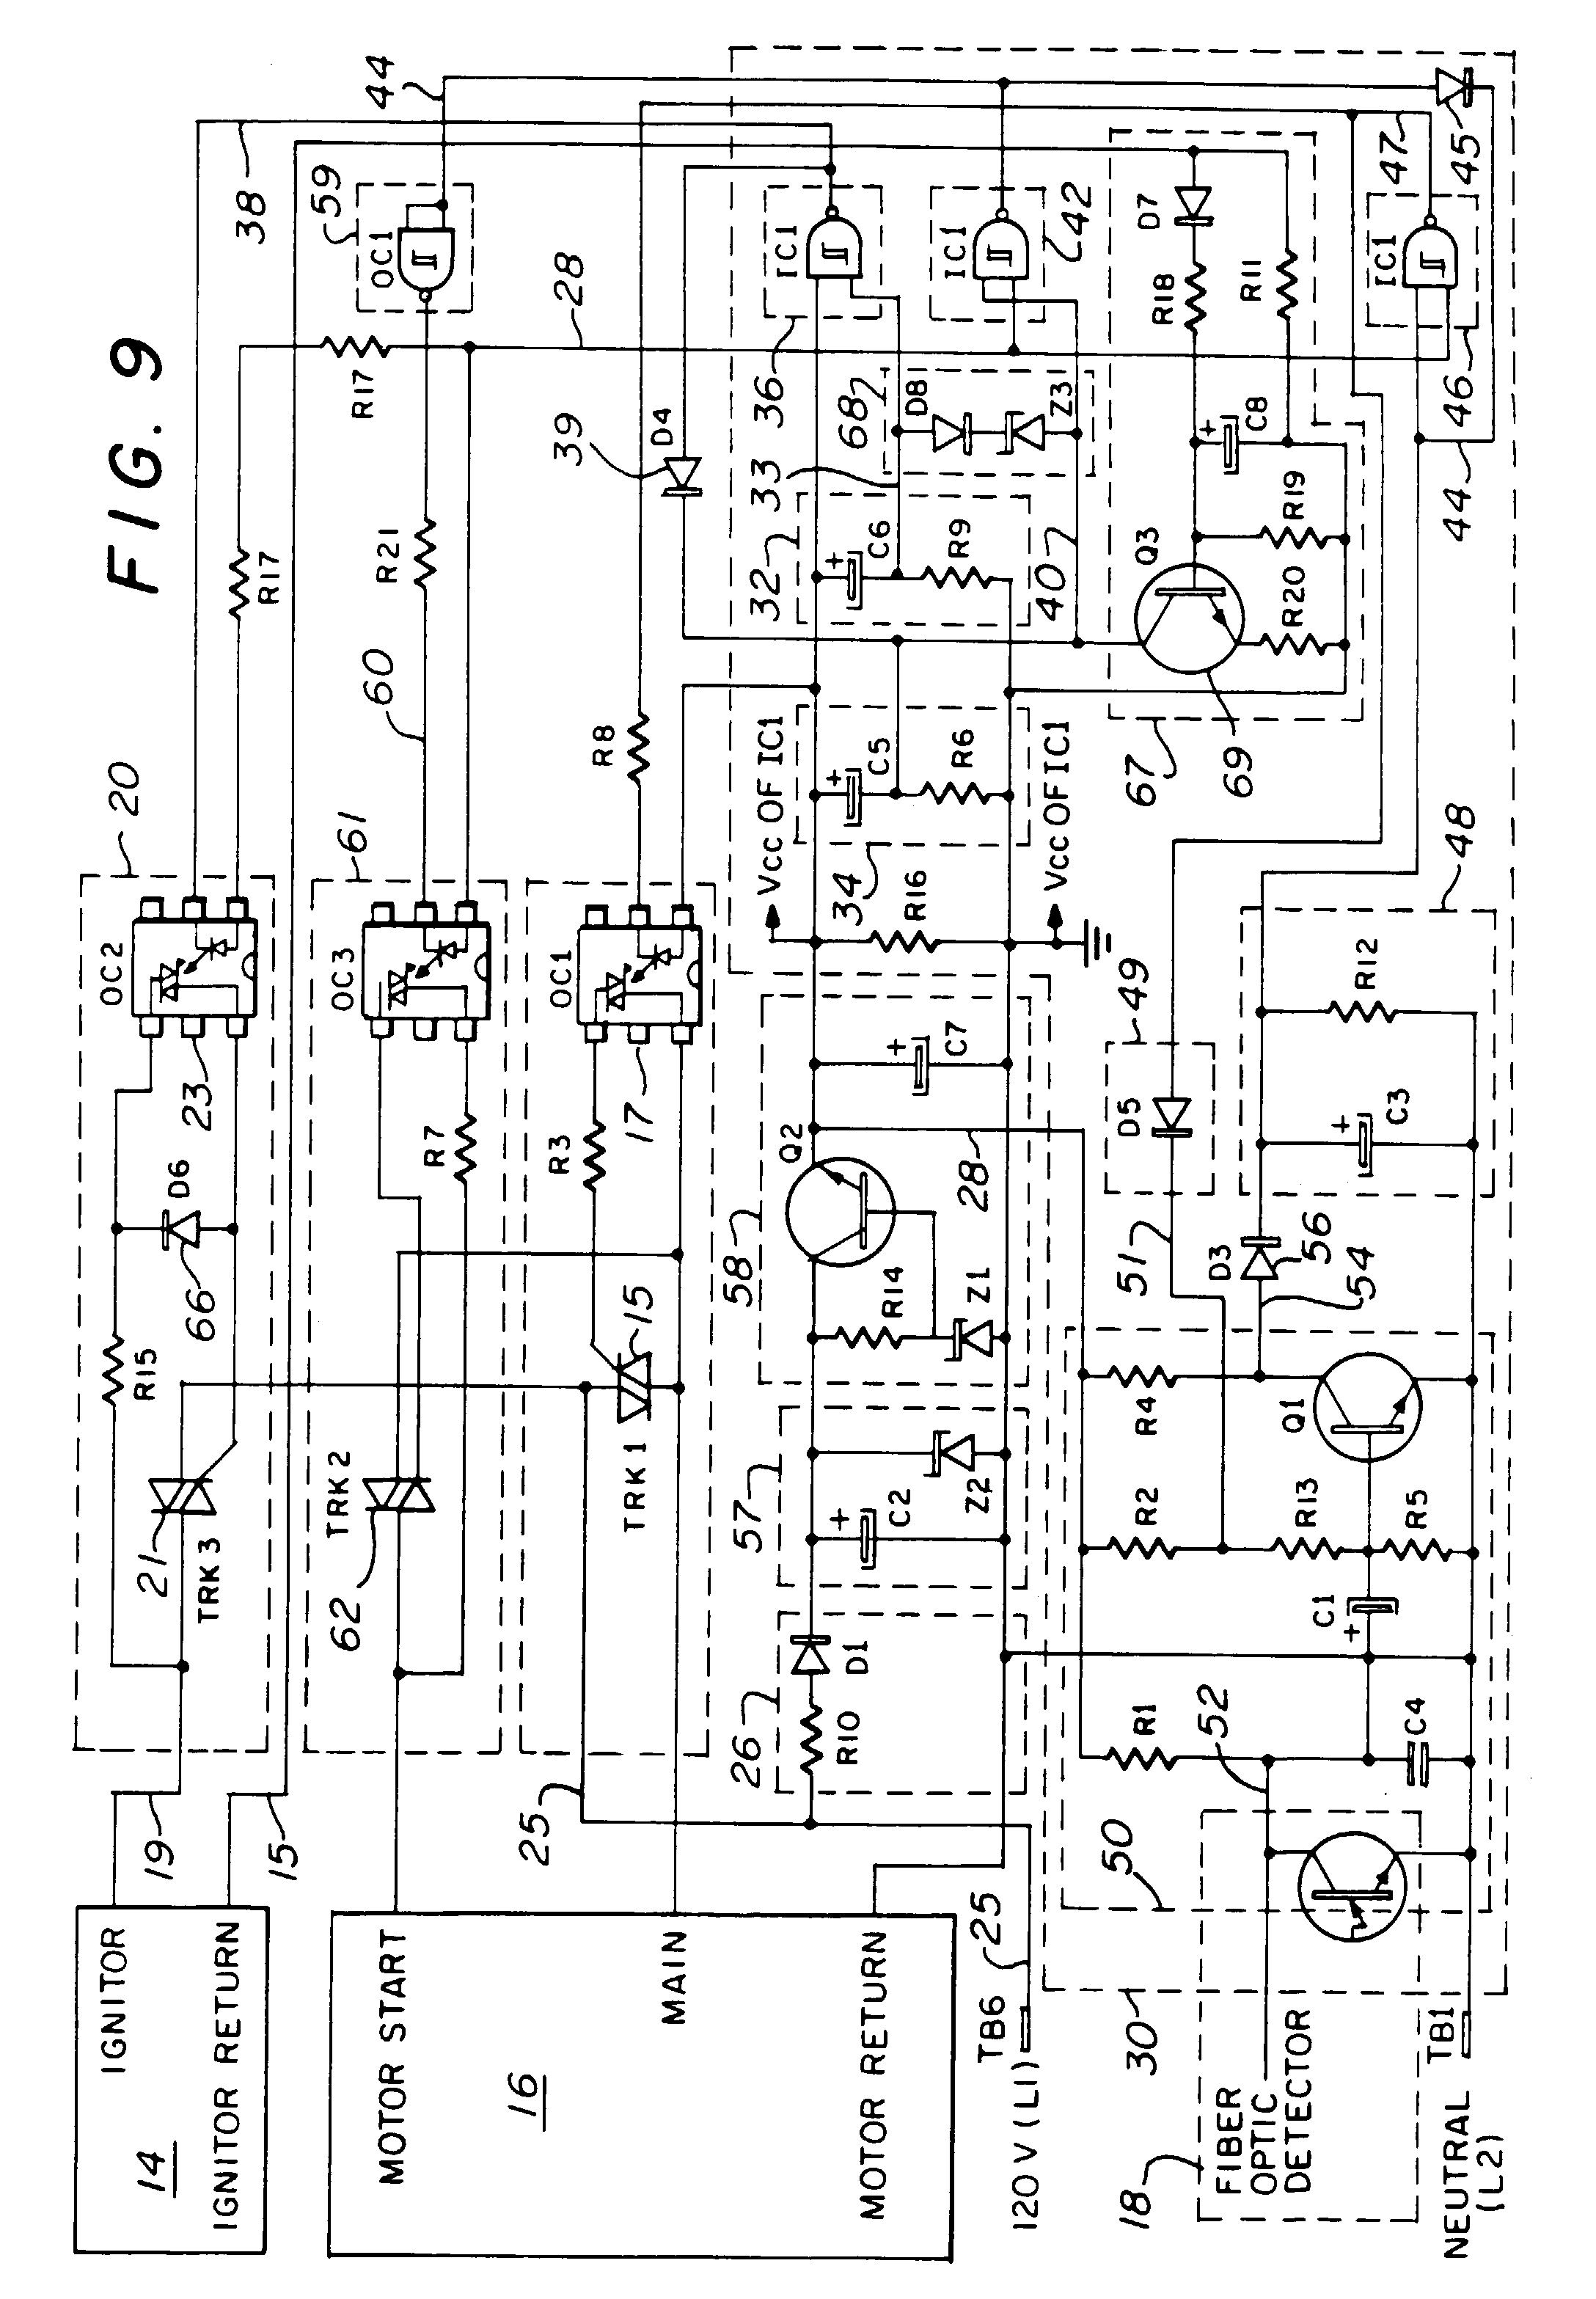 00480001 patent ep1033535a2 hot surface ignition controller for fuel oil power flame burner wiring schematic at creativeand.co